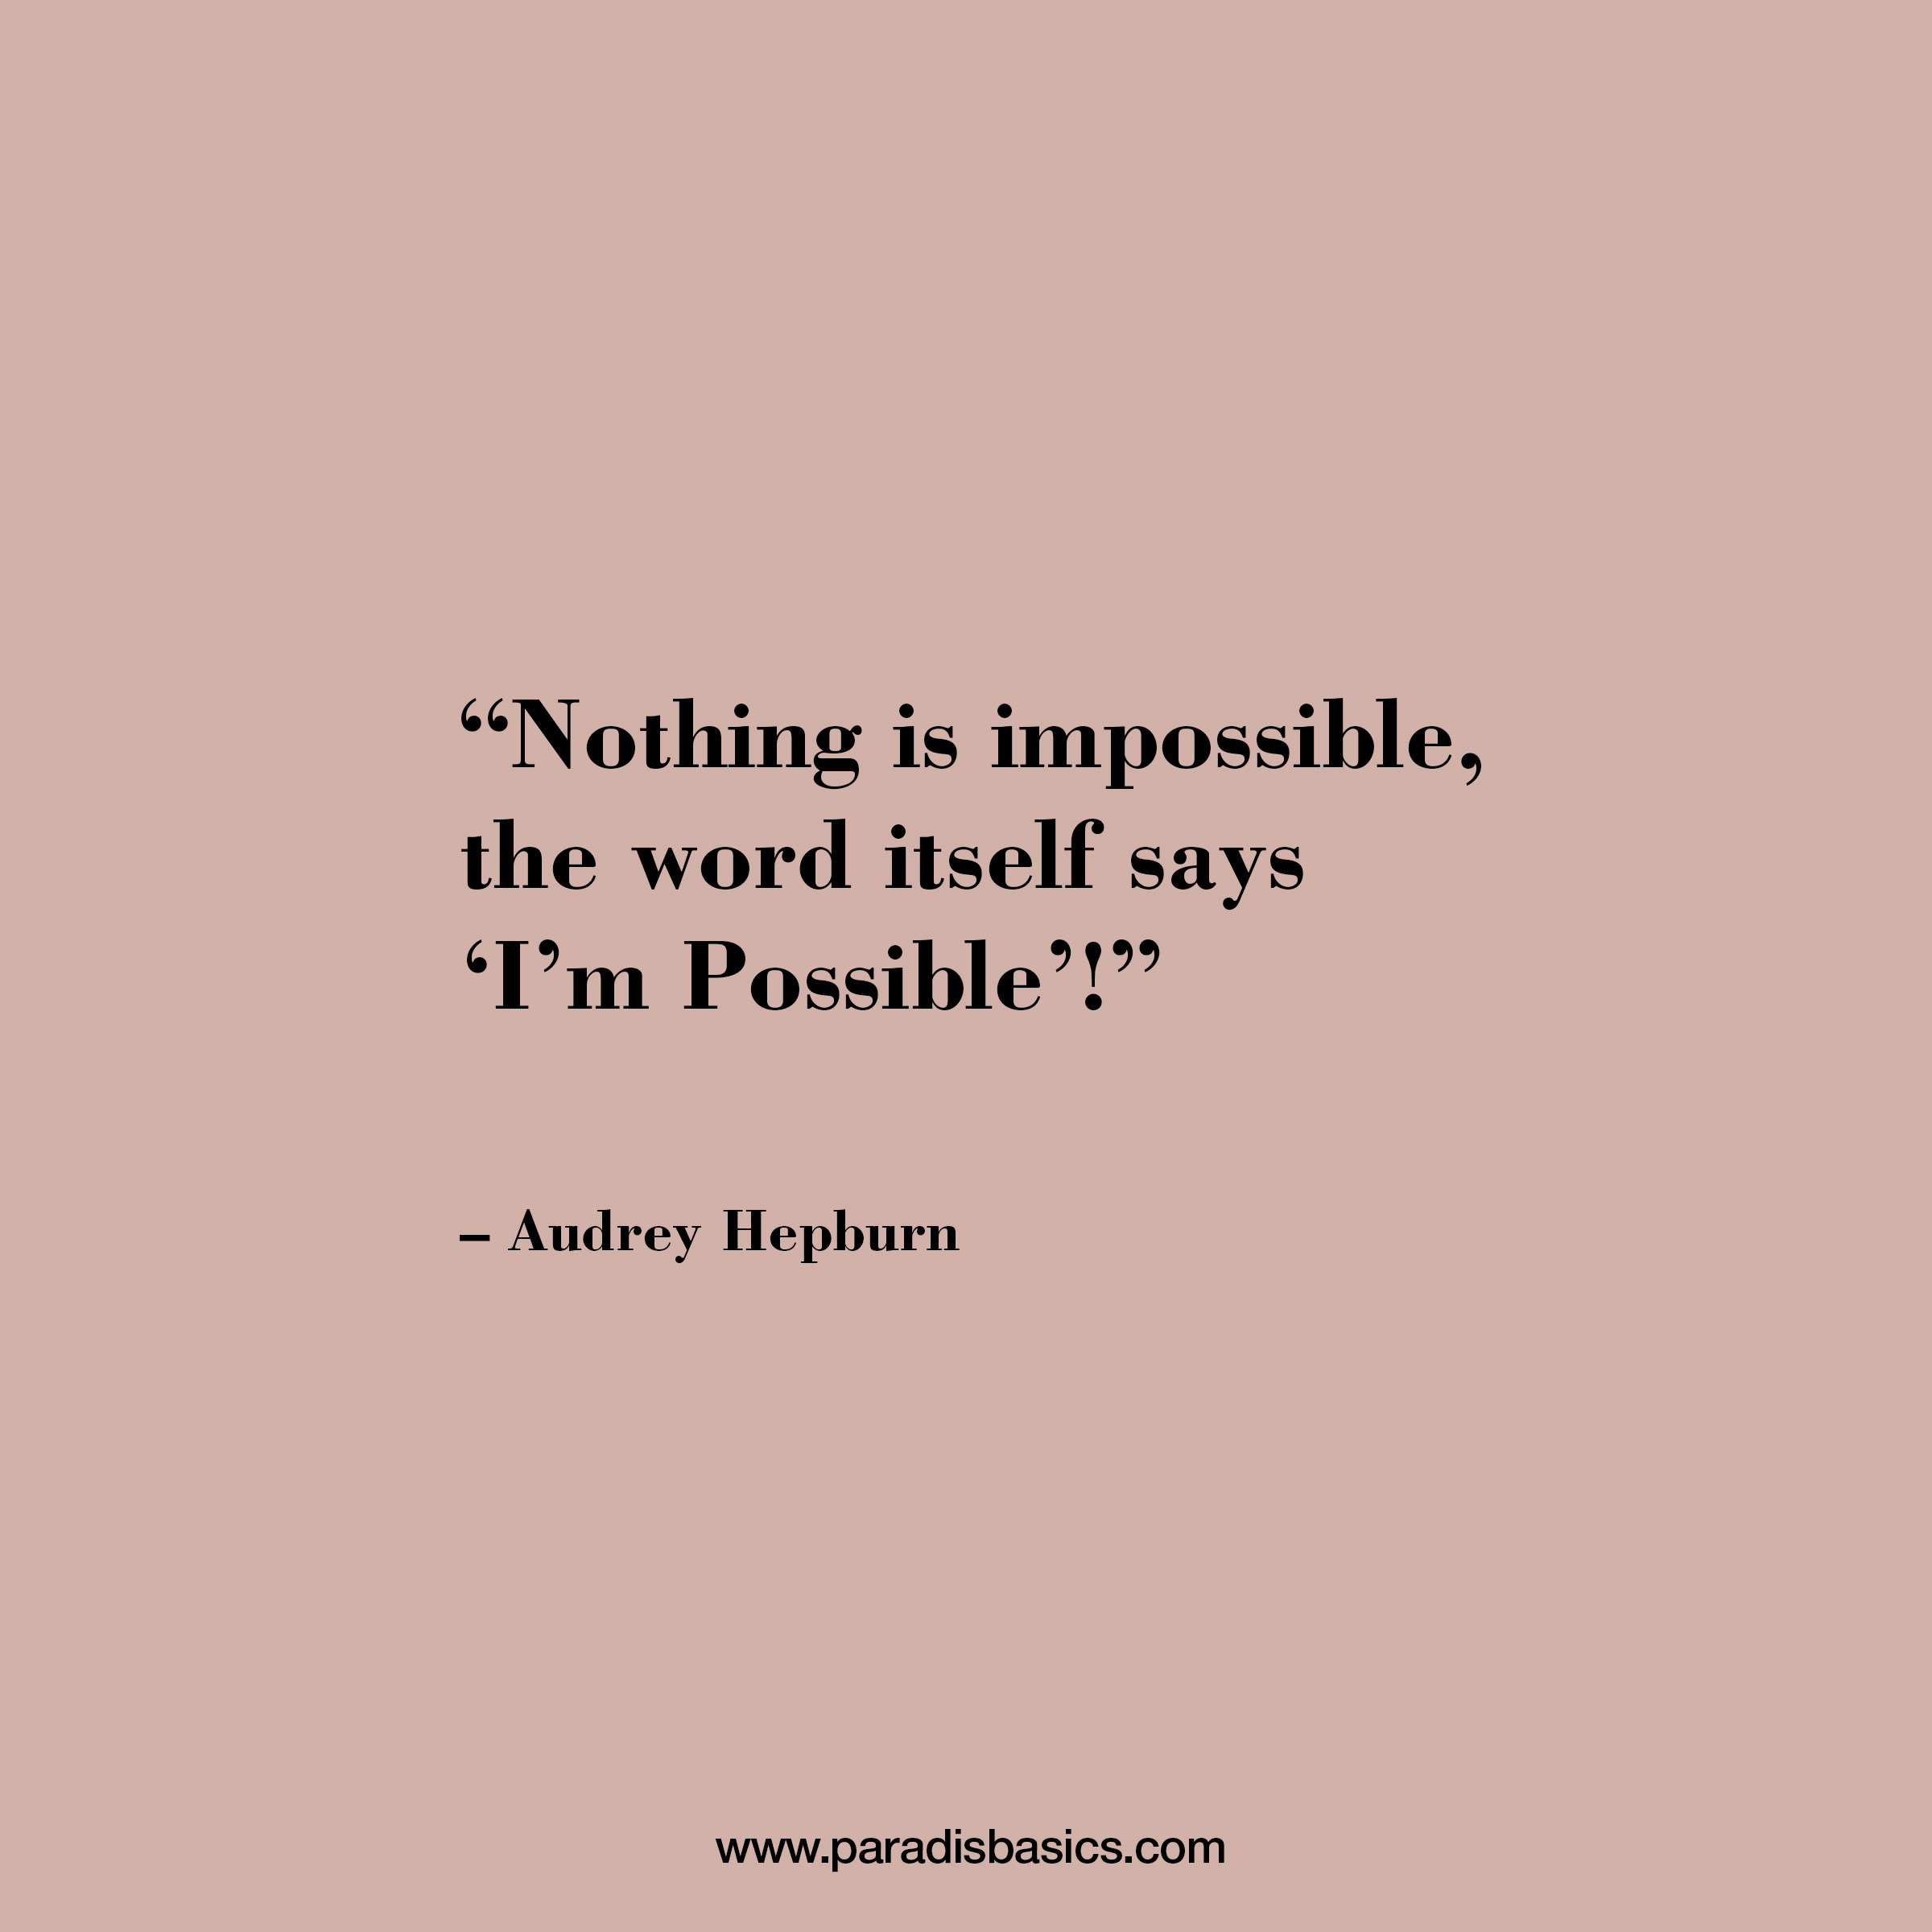 Nothing is impossible, the word itself says I'm Possible - Audrey Hepburn